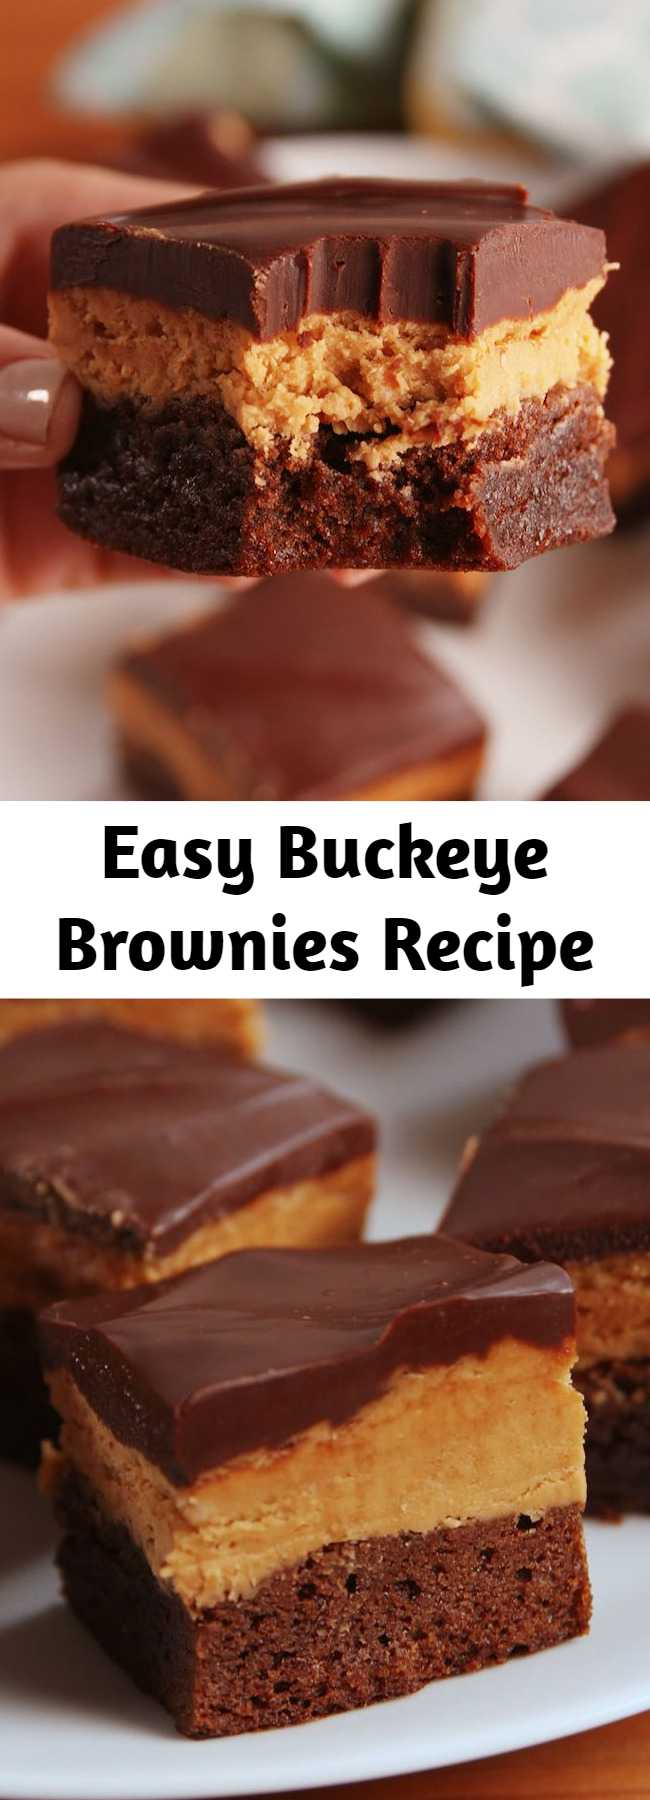 Easy Buckeye Brownies Recipe - We've made A LOT of brownies in our day and these put all others to shame. It's chocolate and peanut butter. What more could you want?